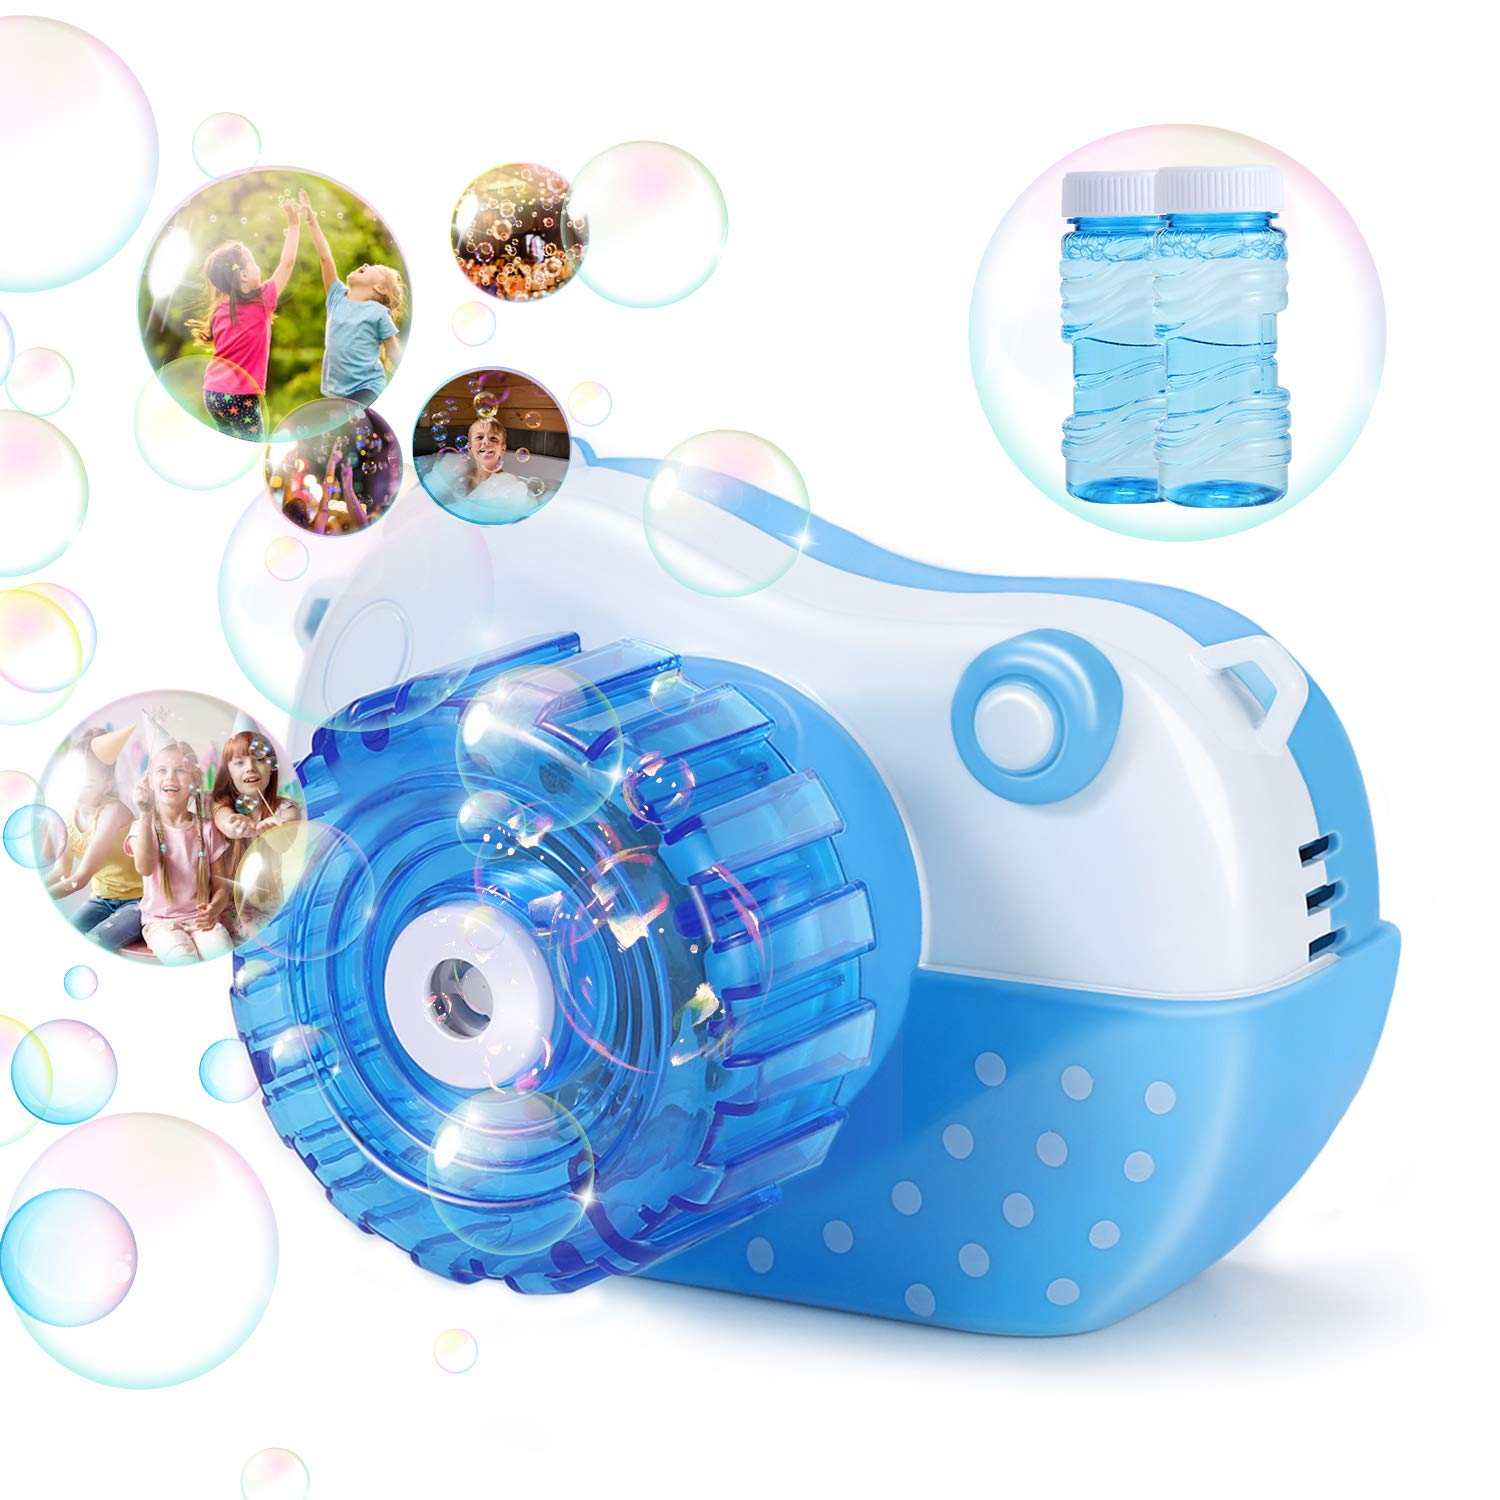 Bubble Machine, Vogek Funny Camera Bubble Blower Portable Baby Bubble Maker with Music and Light Outdoor & Indoor Activity, Best Gaming Toy Gift for Kids Toddlers Boys Girls Pets (Blue)